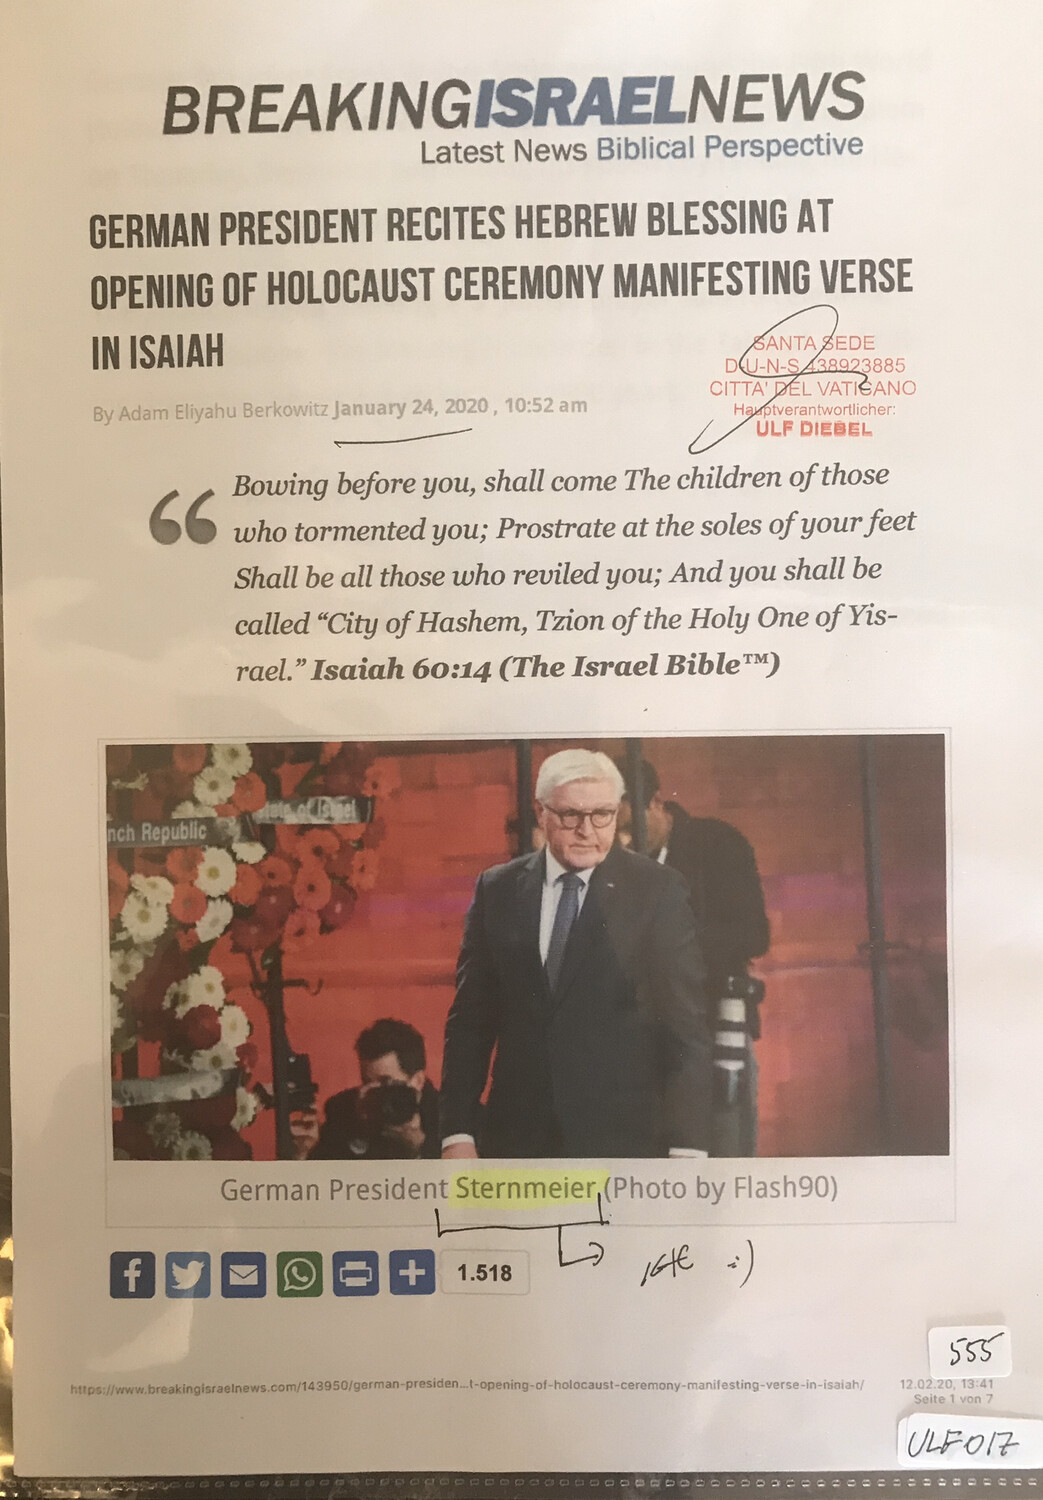 #U017 l BreakingIsraelNews - German President recites hebrew blessing at opening of Holocaust ceremony manifesting verse in Isaiah